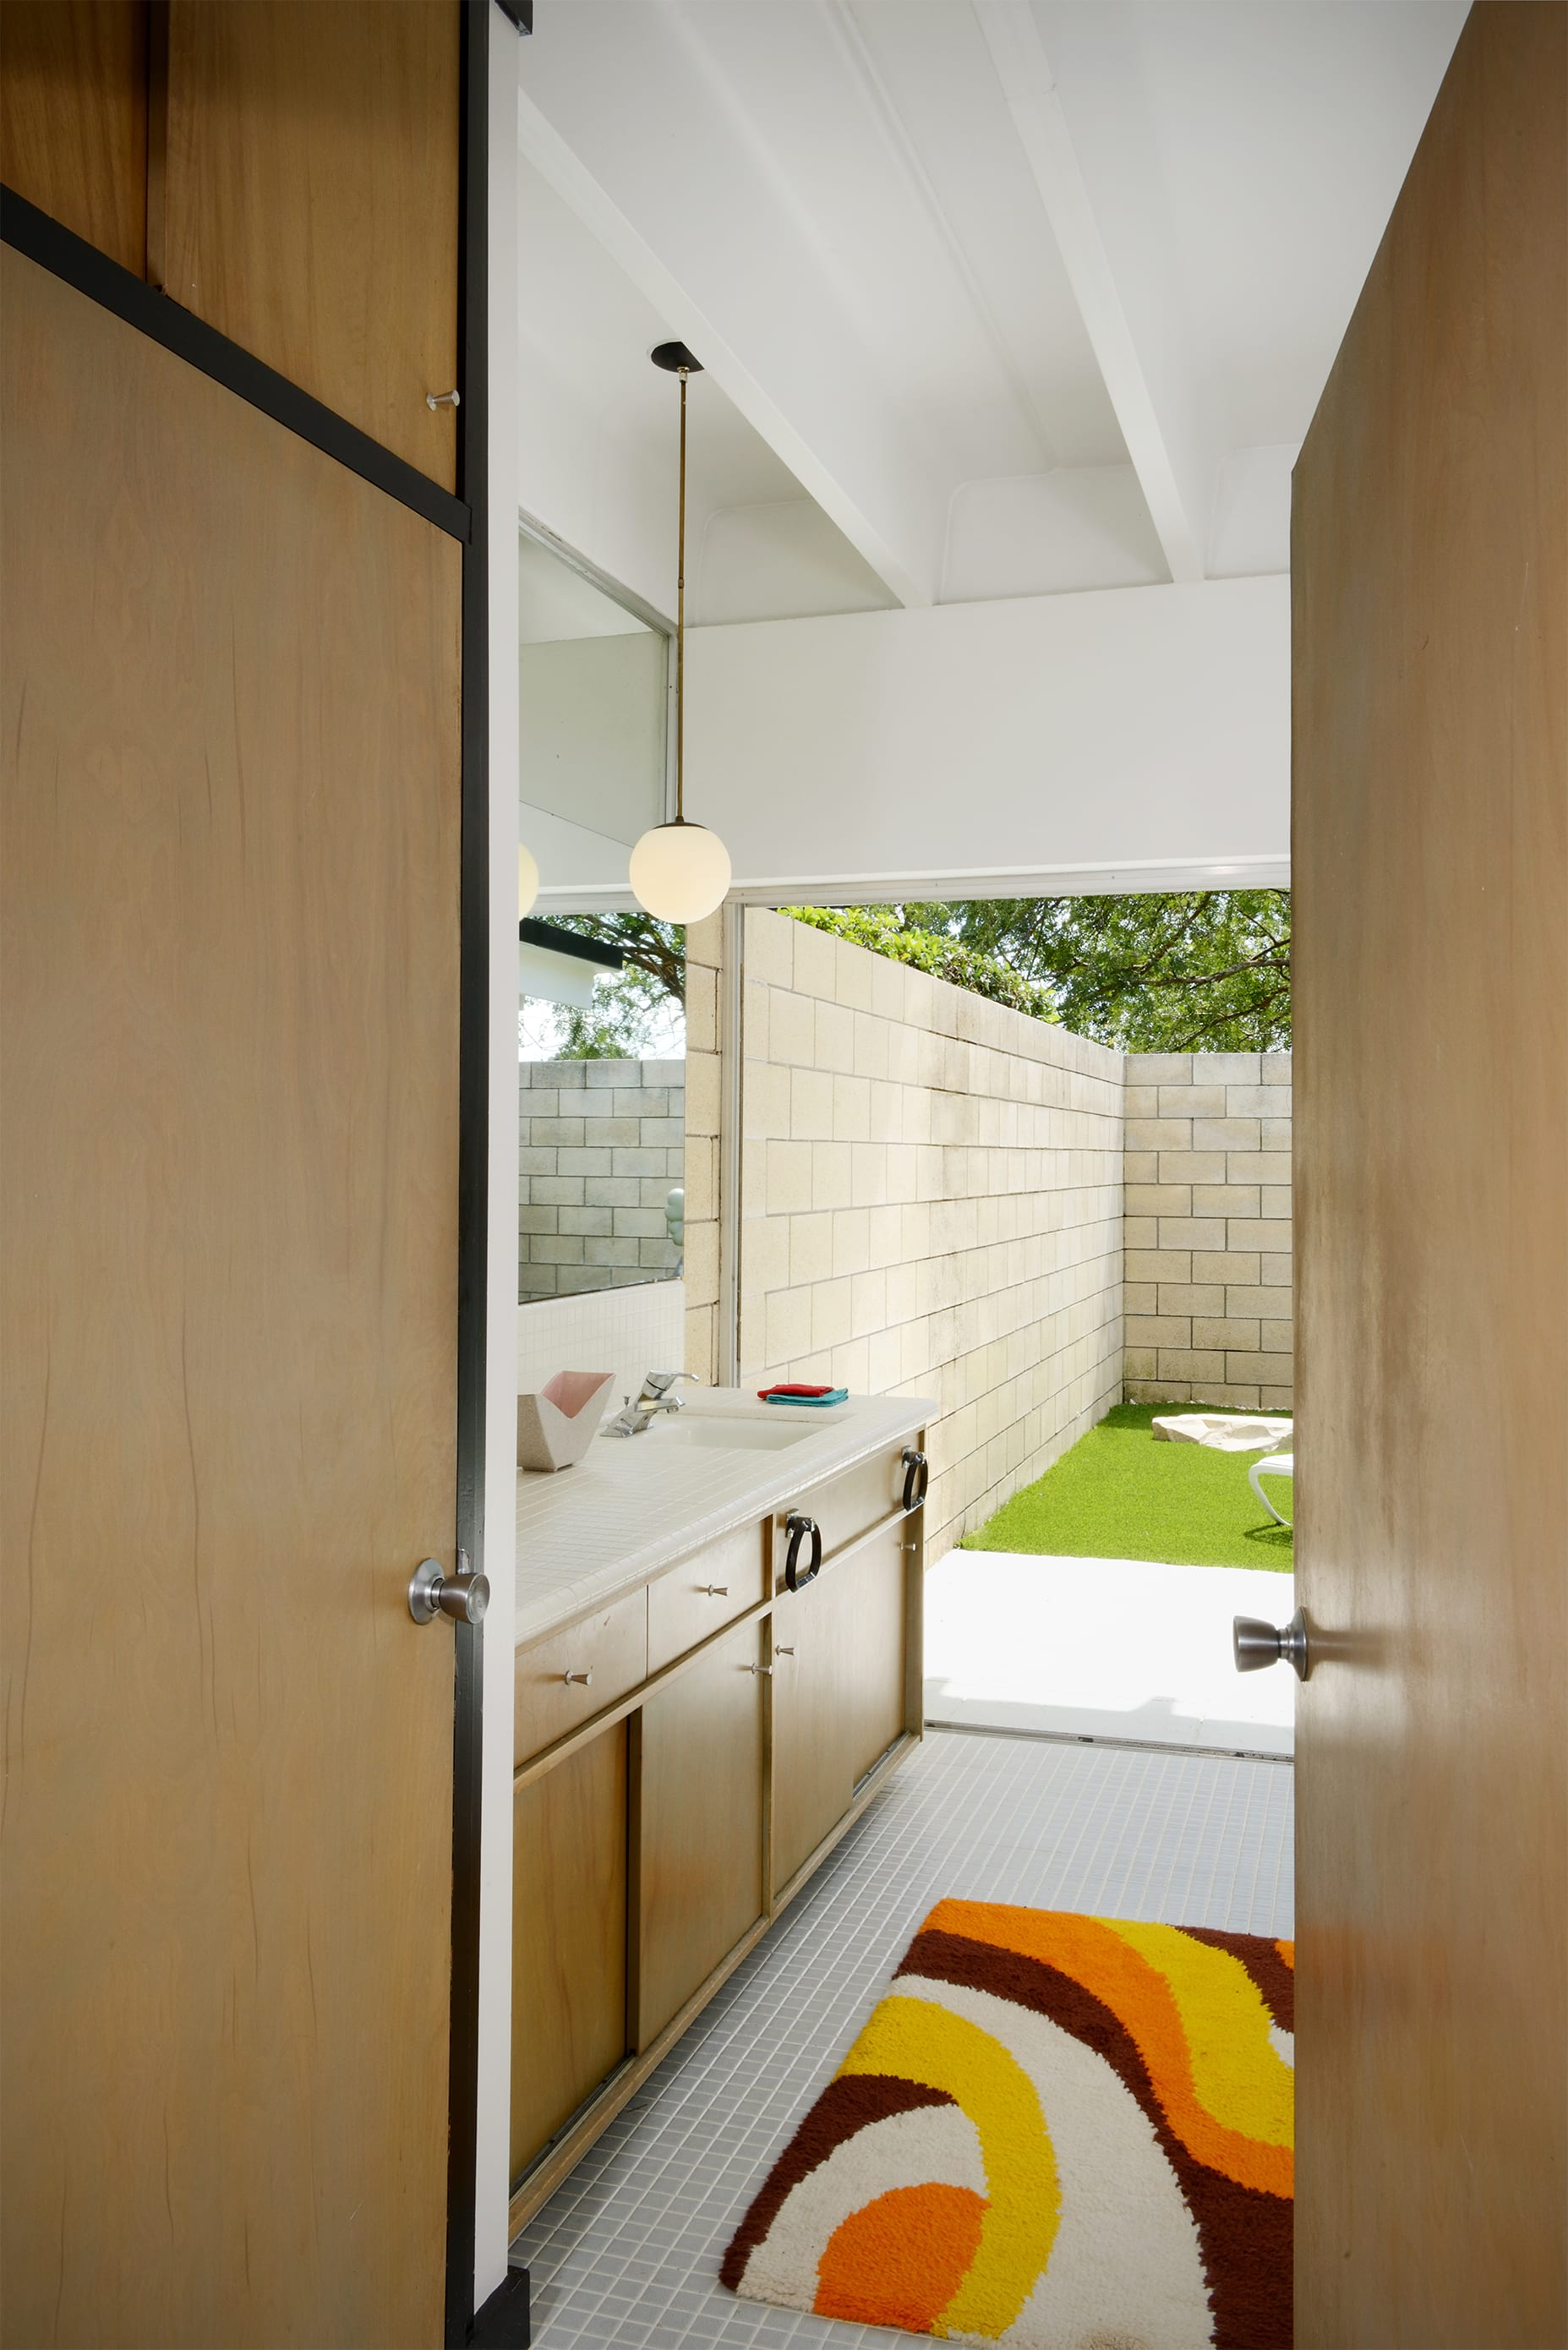 Christopher florentino - midcentury home Florida - bathroom